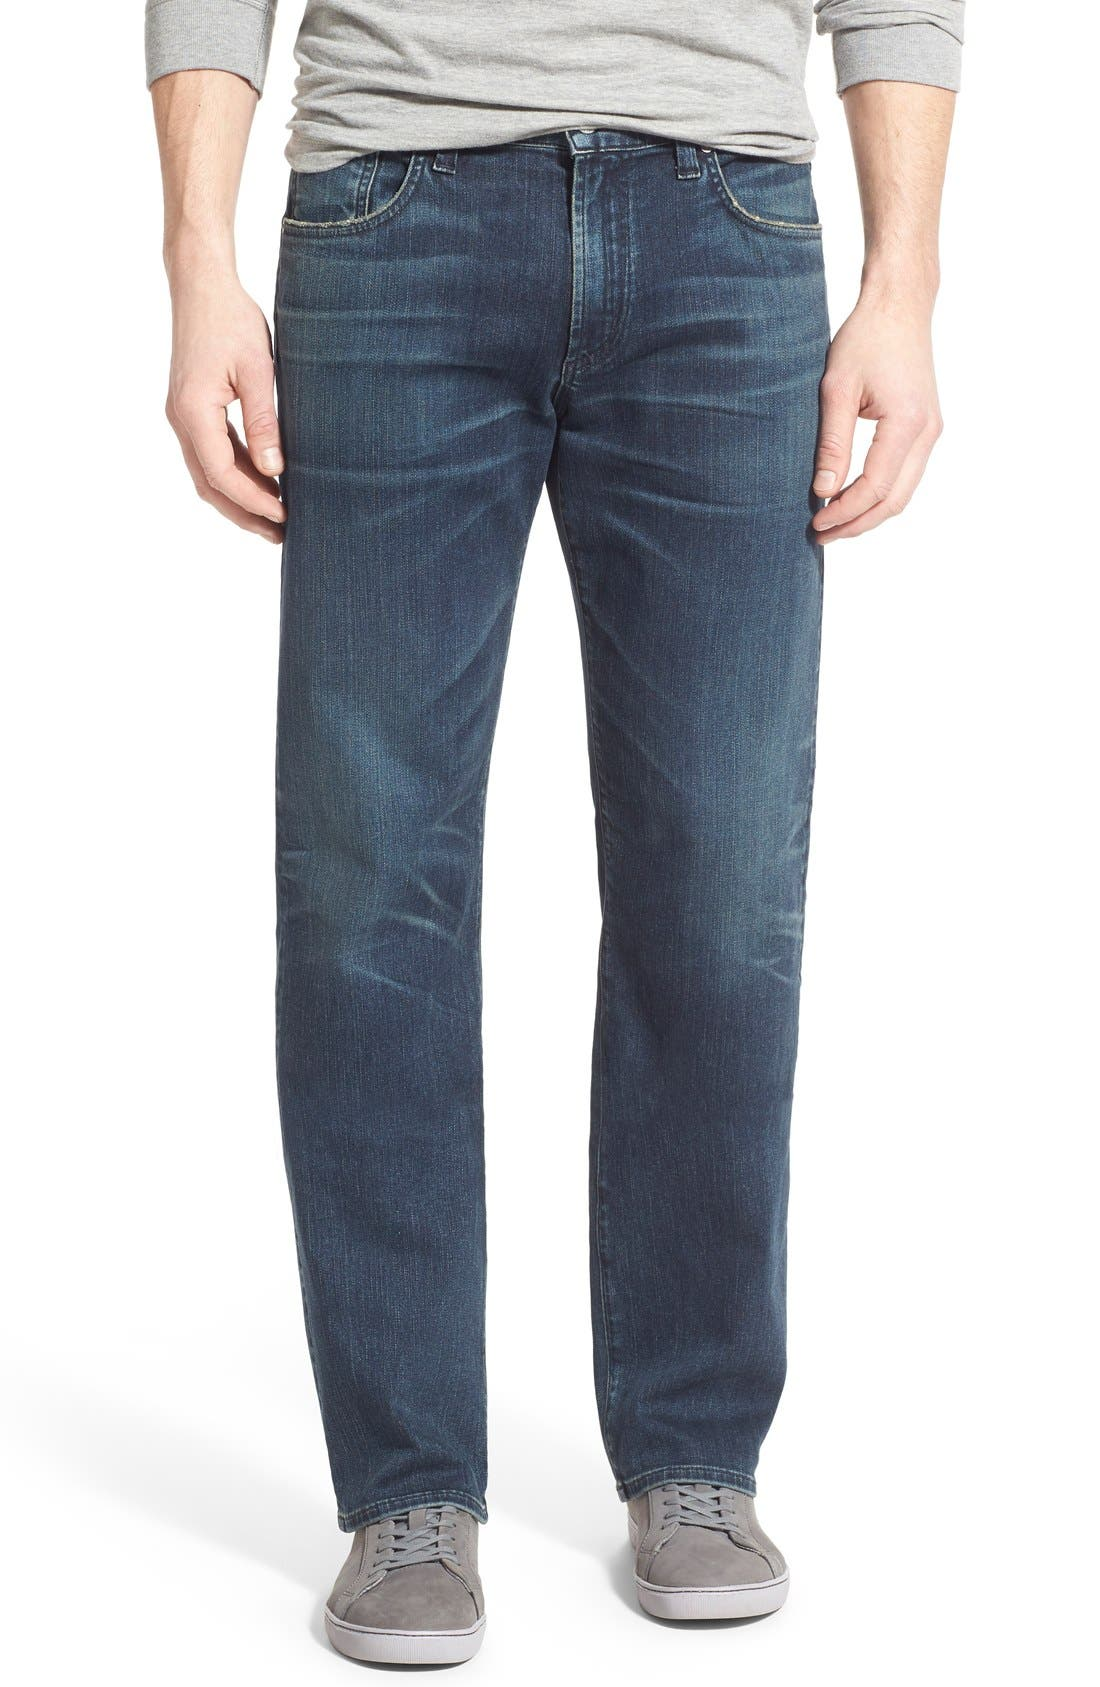 Alternate Image 1 Selected - Citizens of Humanity Sid Straight Leg Jeans (Norland)